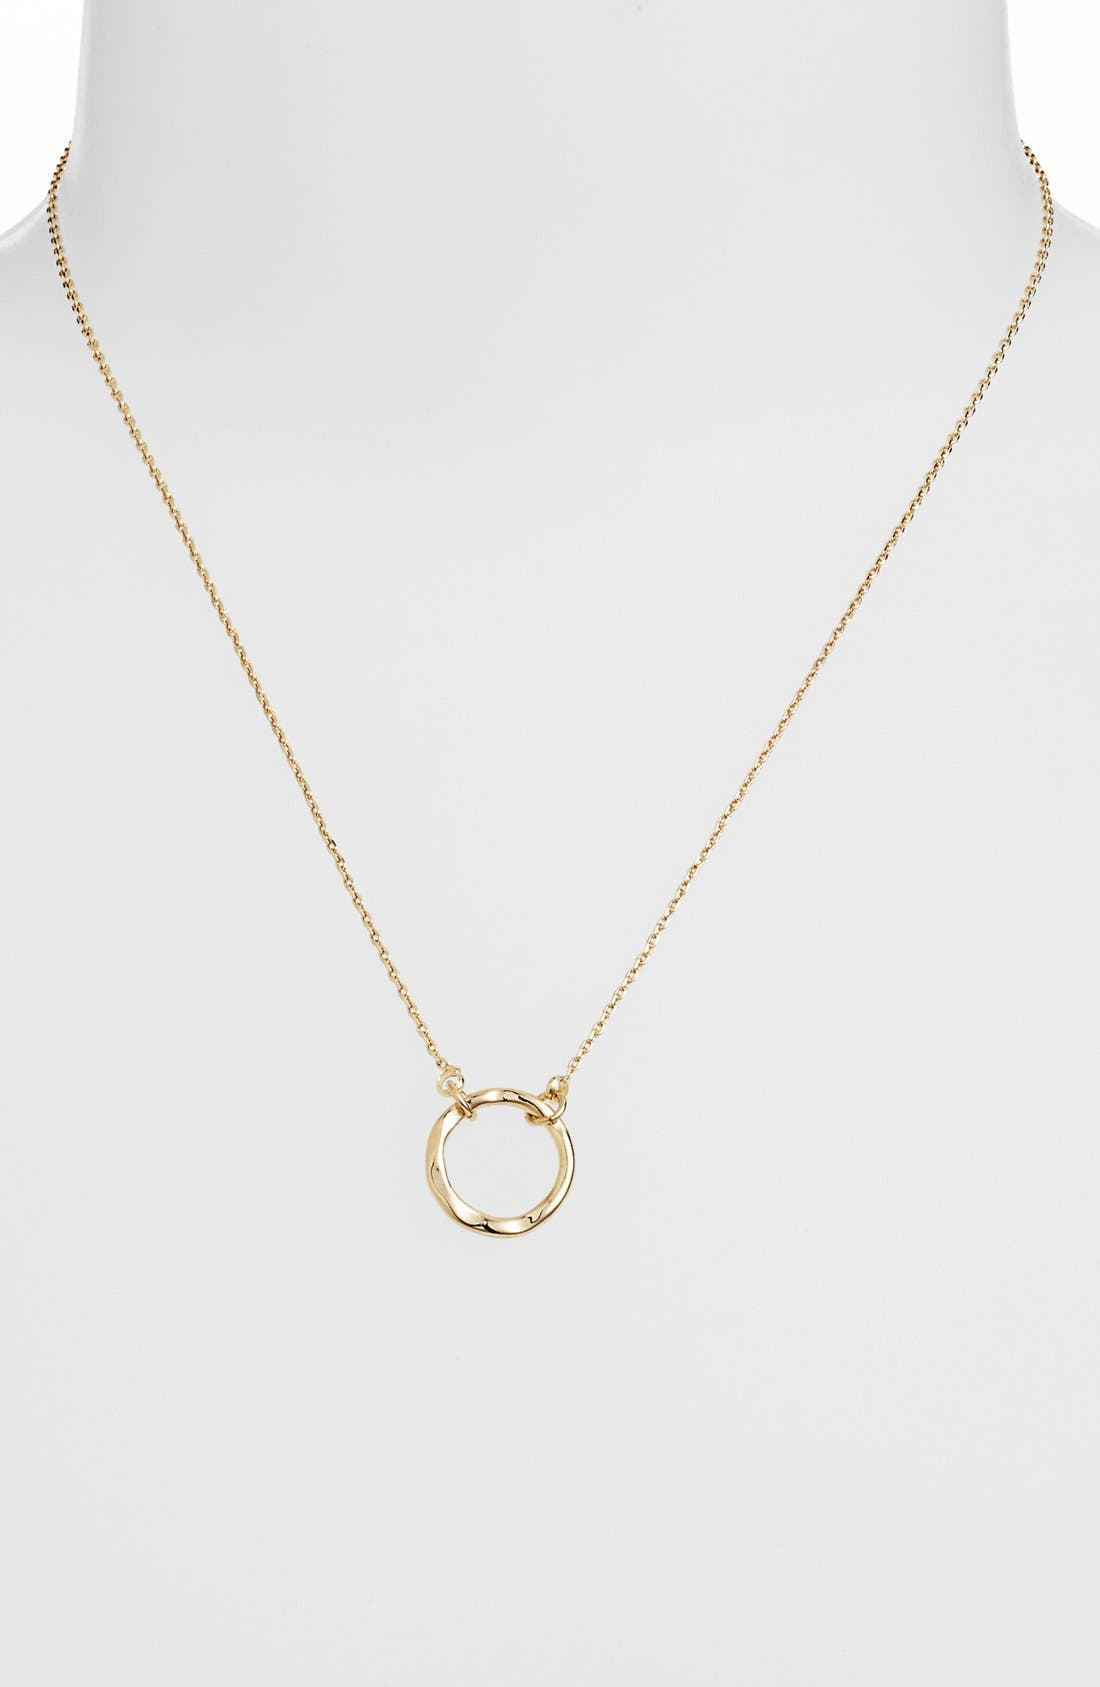 Alternate Image 1 Selected - Stephan & Co. Circle Charm Necklace (Juniors)